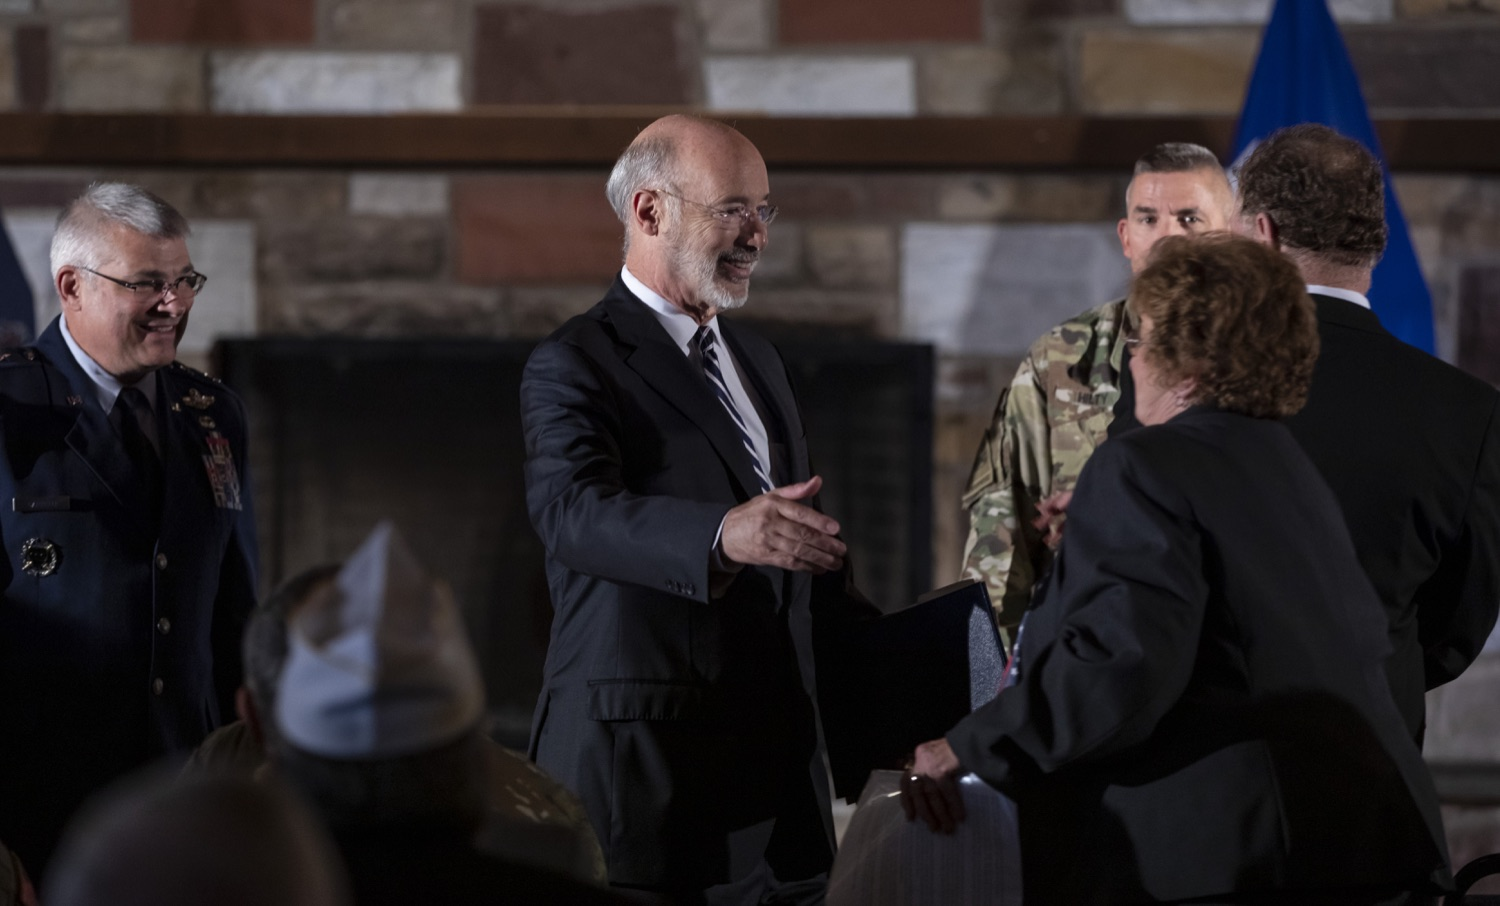 """<a href=""""http://filesource.abacast.com/commonwealthofpa/photo/17557_gov_dmva_rjw_002.jpg"""" target=""""_blank"""">⇣Download Photo<br></a>Governor Tom Wolf helped to honor two members inducted today into the Pennsylvania Department of Military and Veterans Affairs prestigious Hall of Fame, recognizing their exceptional service to the department that supports Pennsylvanias nearly 800,000 veterans and 18,000 members of the National Guard.  Chief Warrant Officer 5 (ret.) John K. Schreier of Selinsgrove, Snyder County; and John A. Brenner (posthumously) of Mt. Wolf, York County, are the 2019 inductees."""